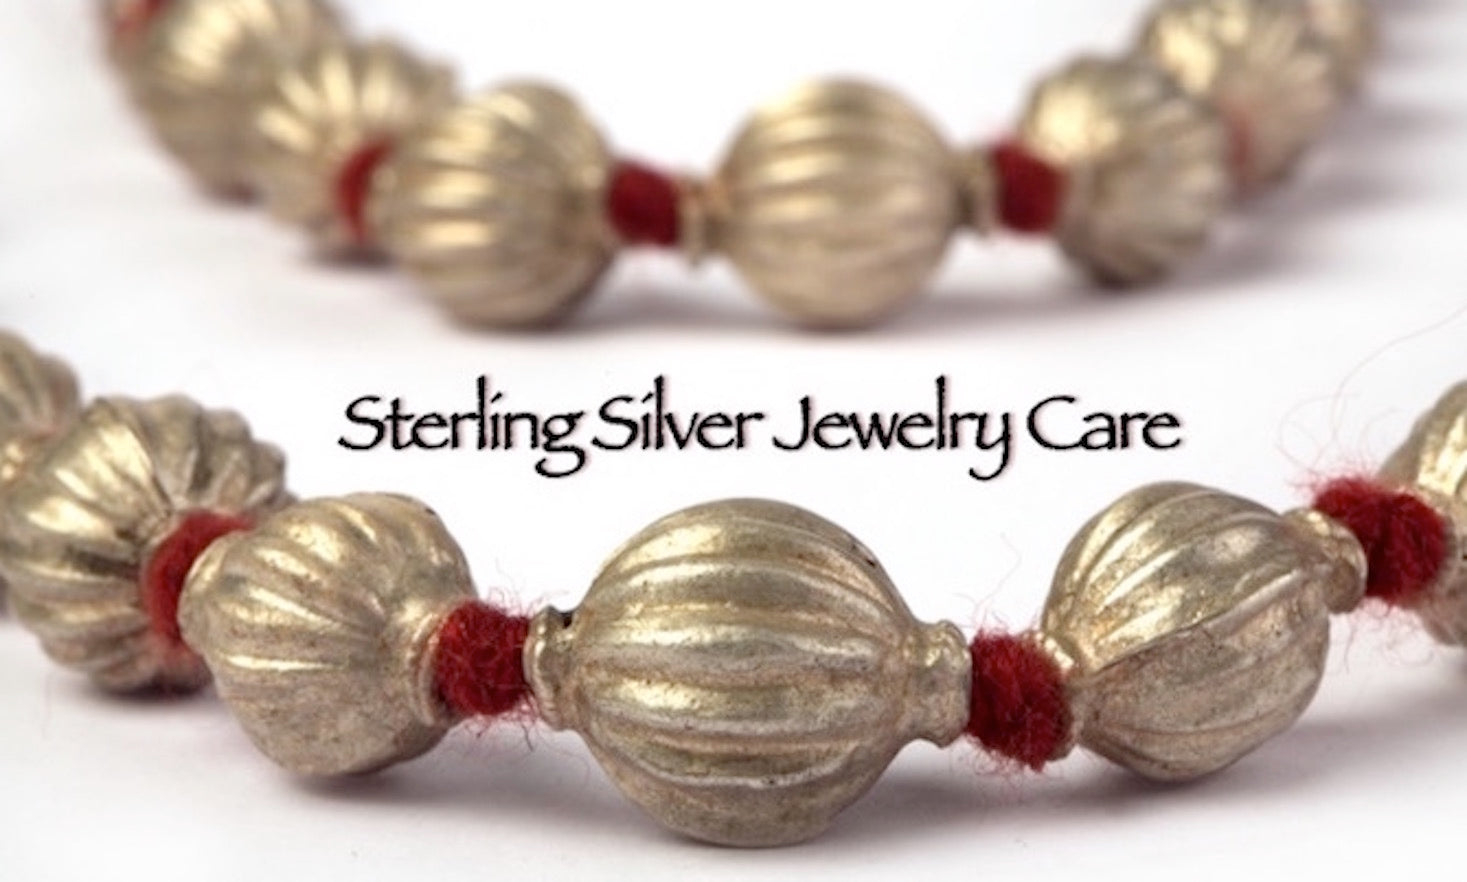 Sterling Silver Jewelry Care